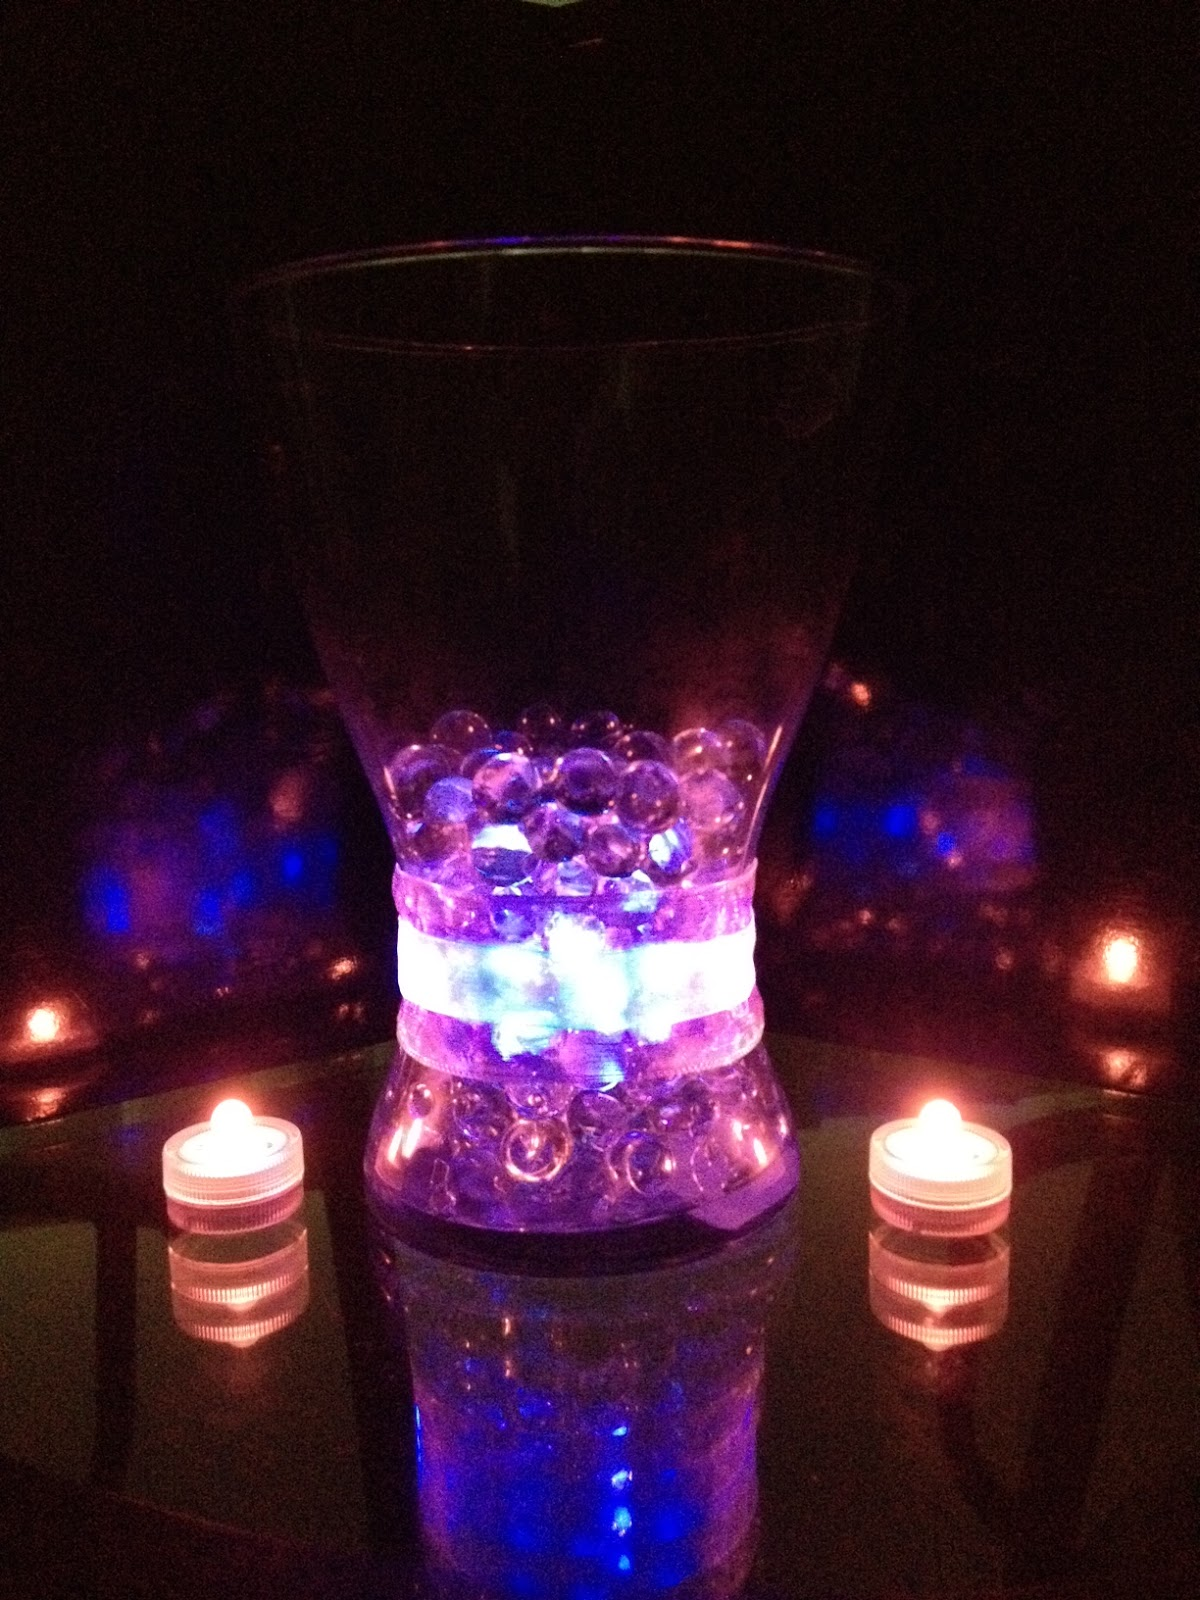 Wedding Centerpieces With Submersible Lights : Purple and pink submersible lights, water pearls, ribbons, and an Ikea ...